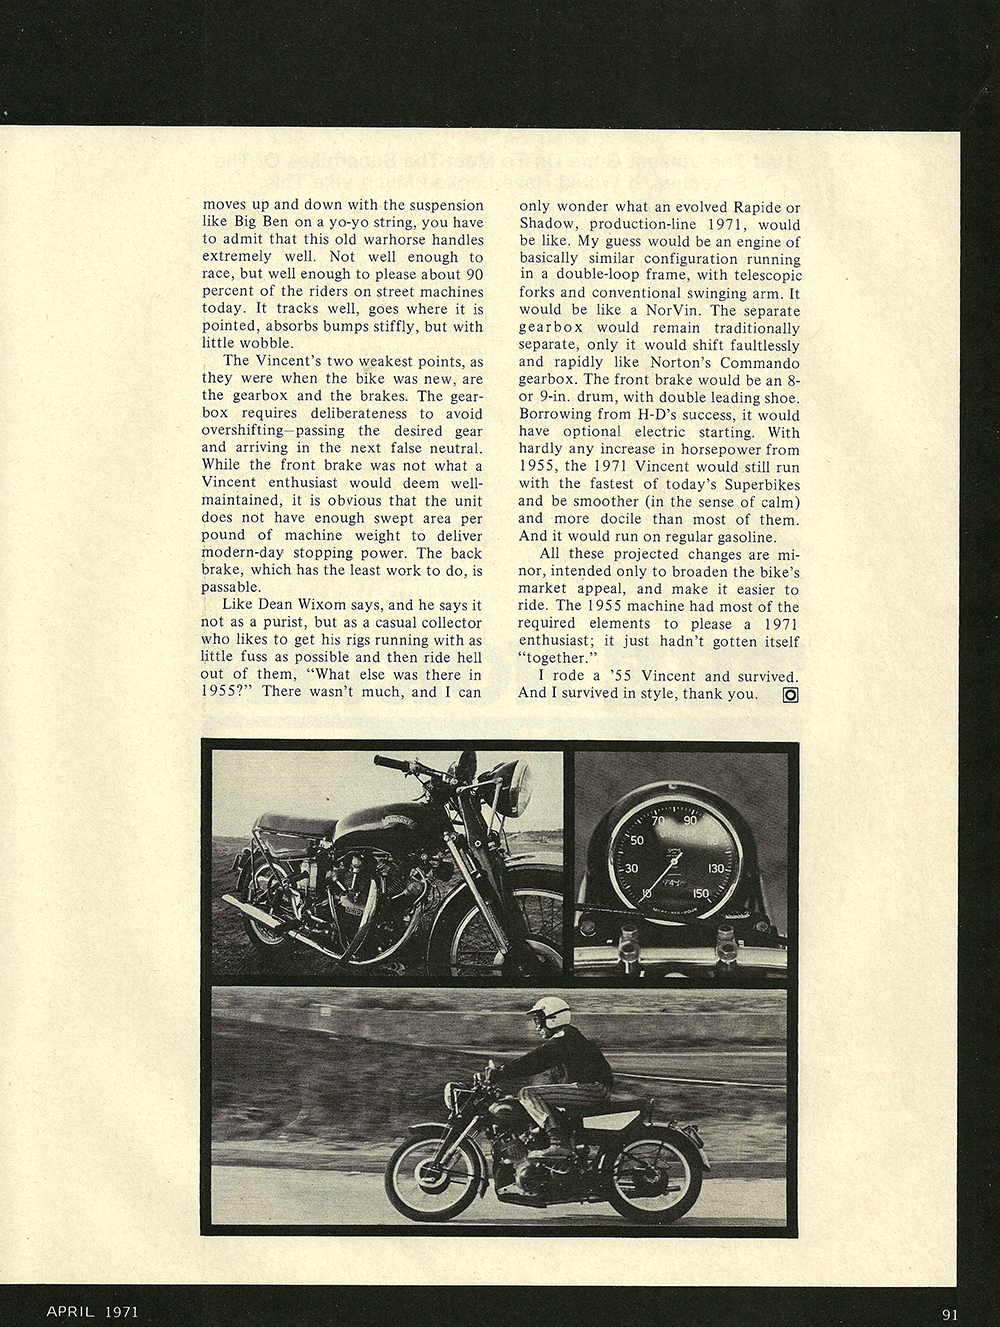 History of Vincent Motorcycles 10.jpg